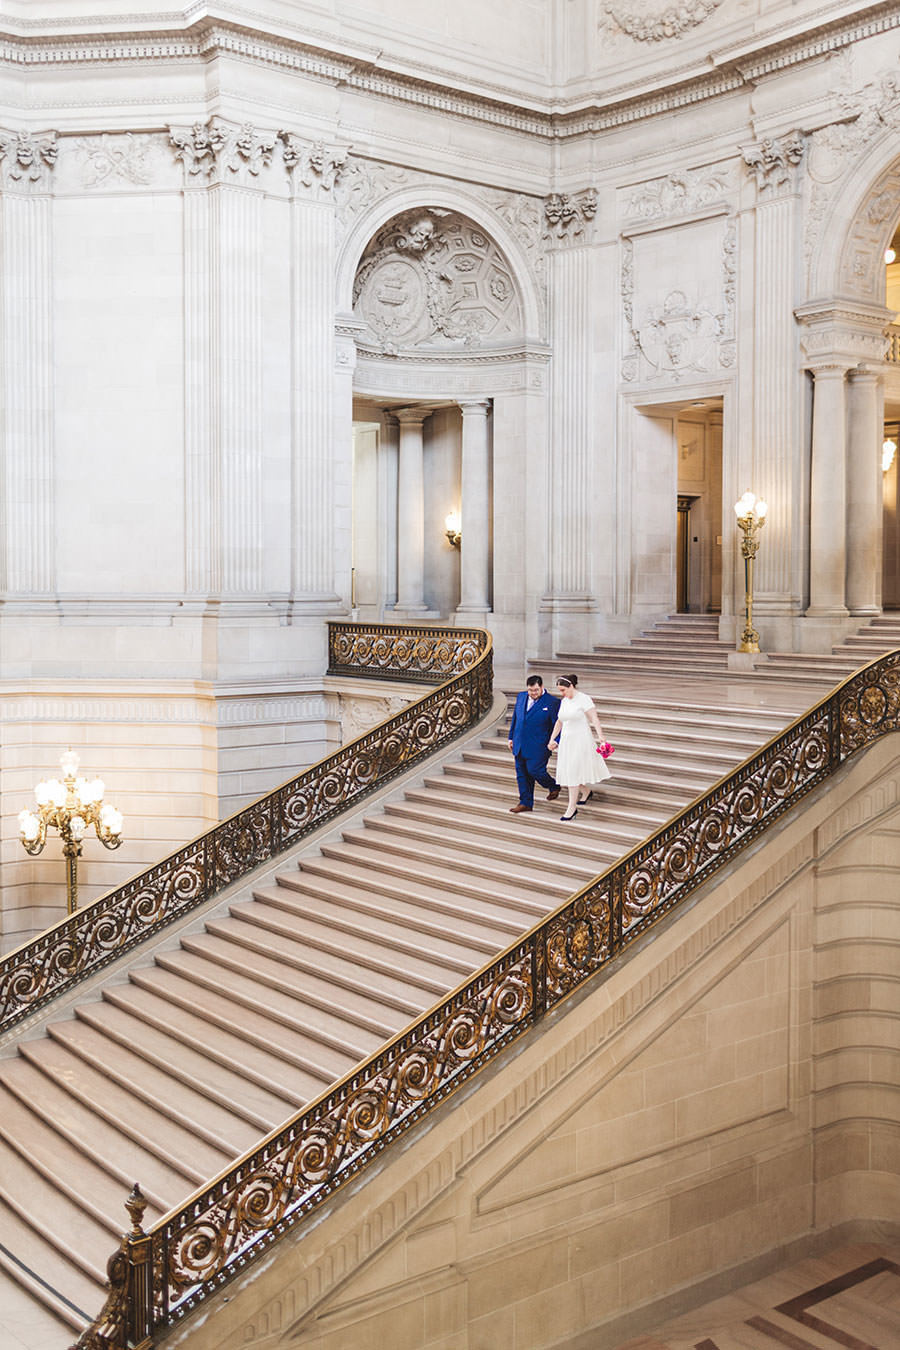 epic wide grand staircase shot taken from north side